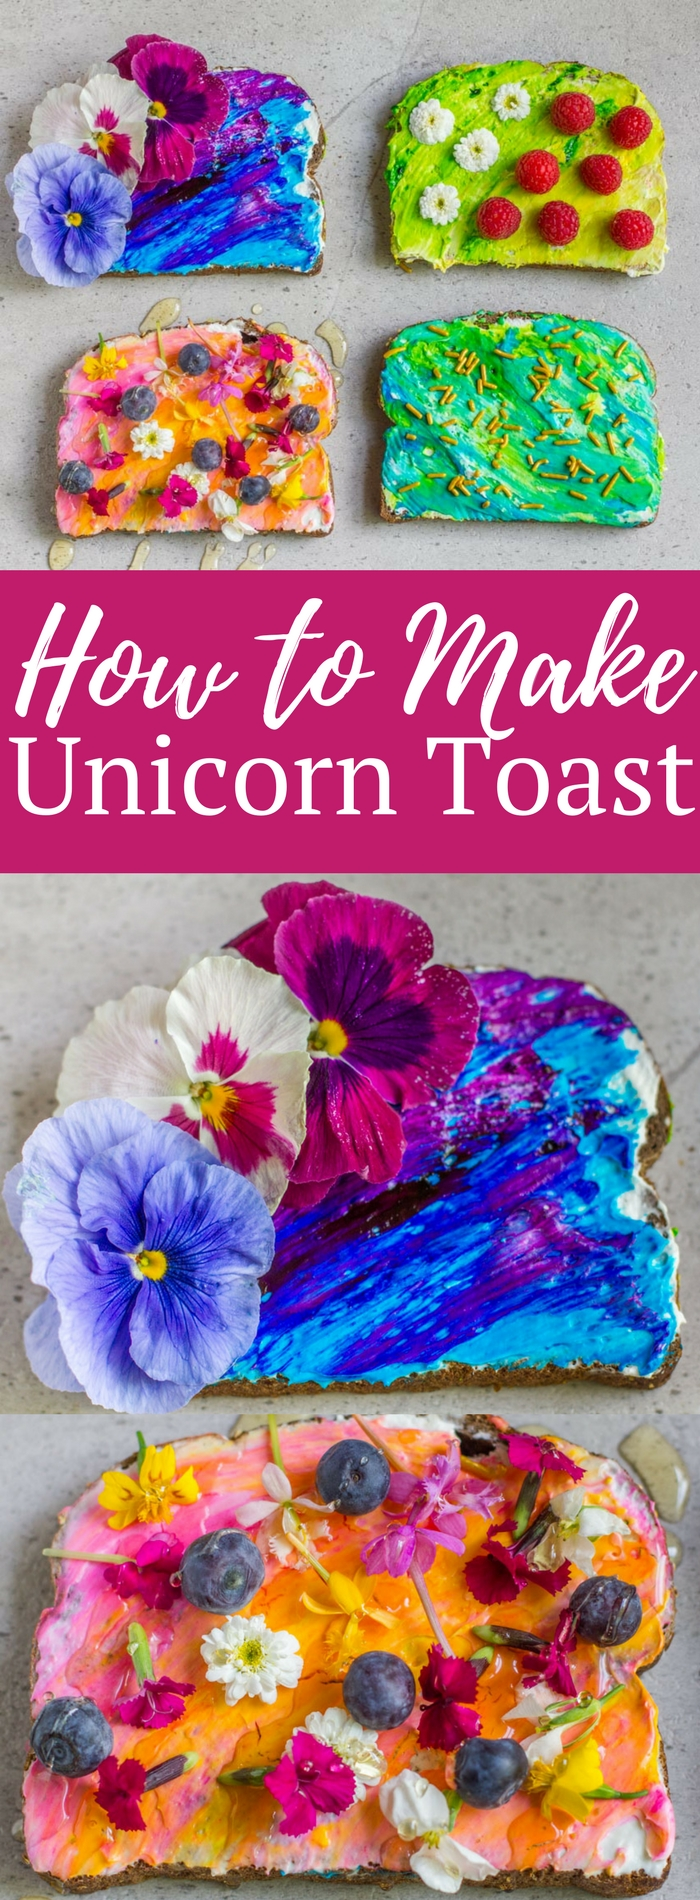 Find out how to make these Instagram worthy treats! Making gorgeous unicorn or mermaid toast is easier than you think!